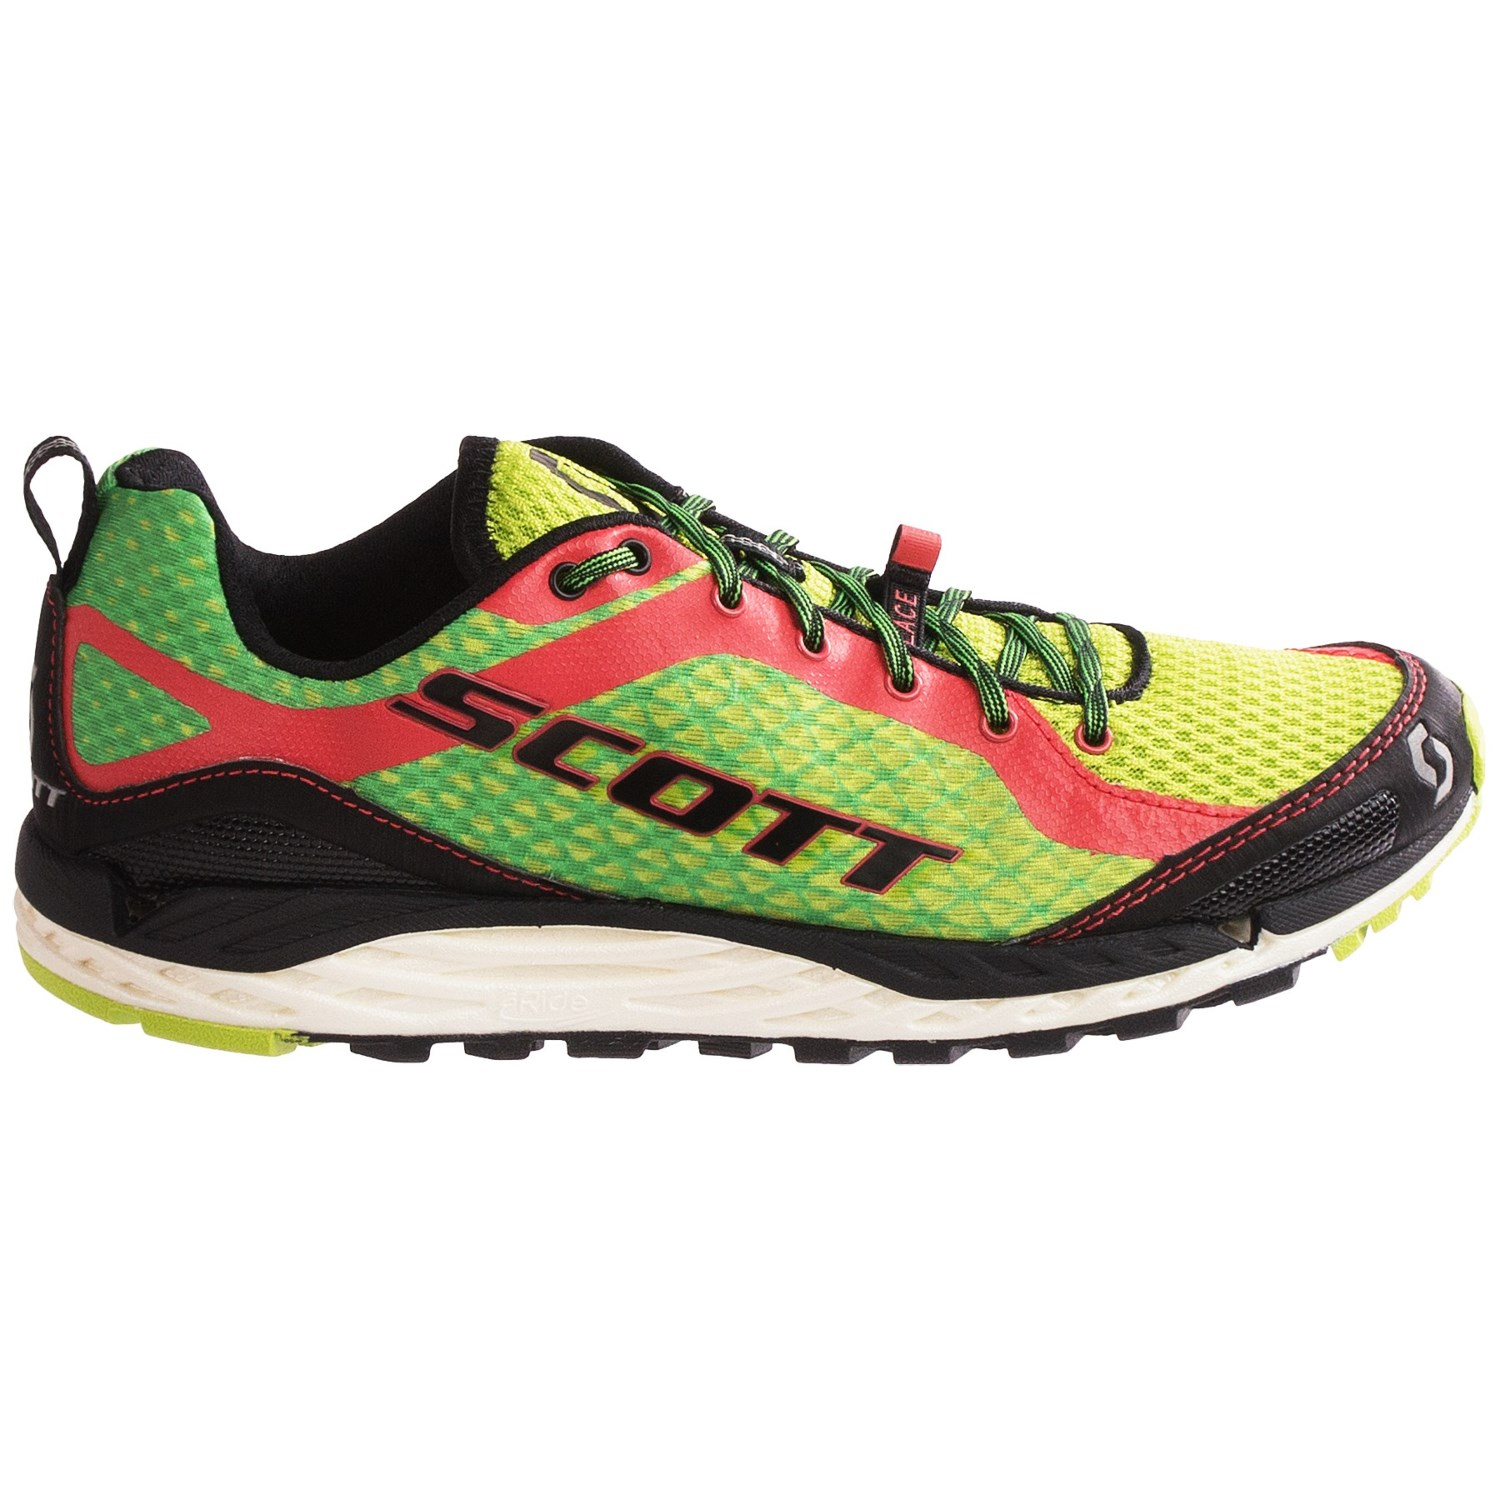 Scott Running Shoes Review